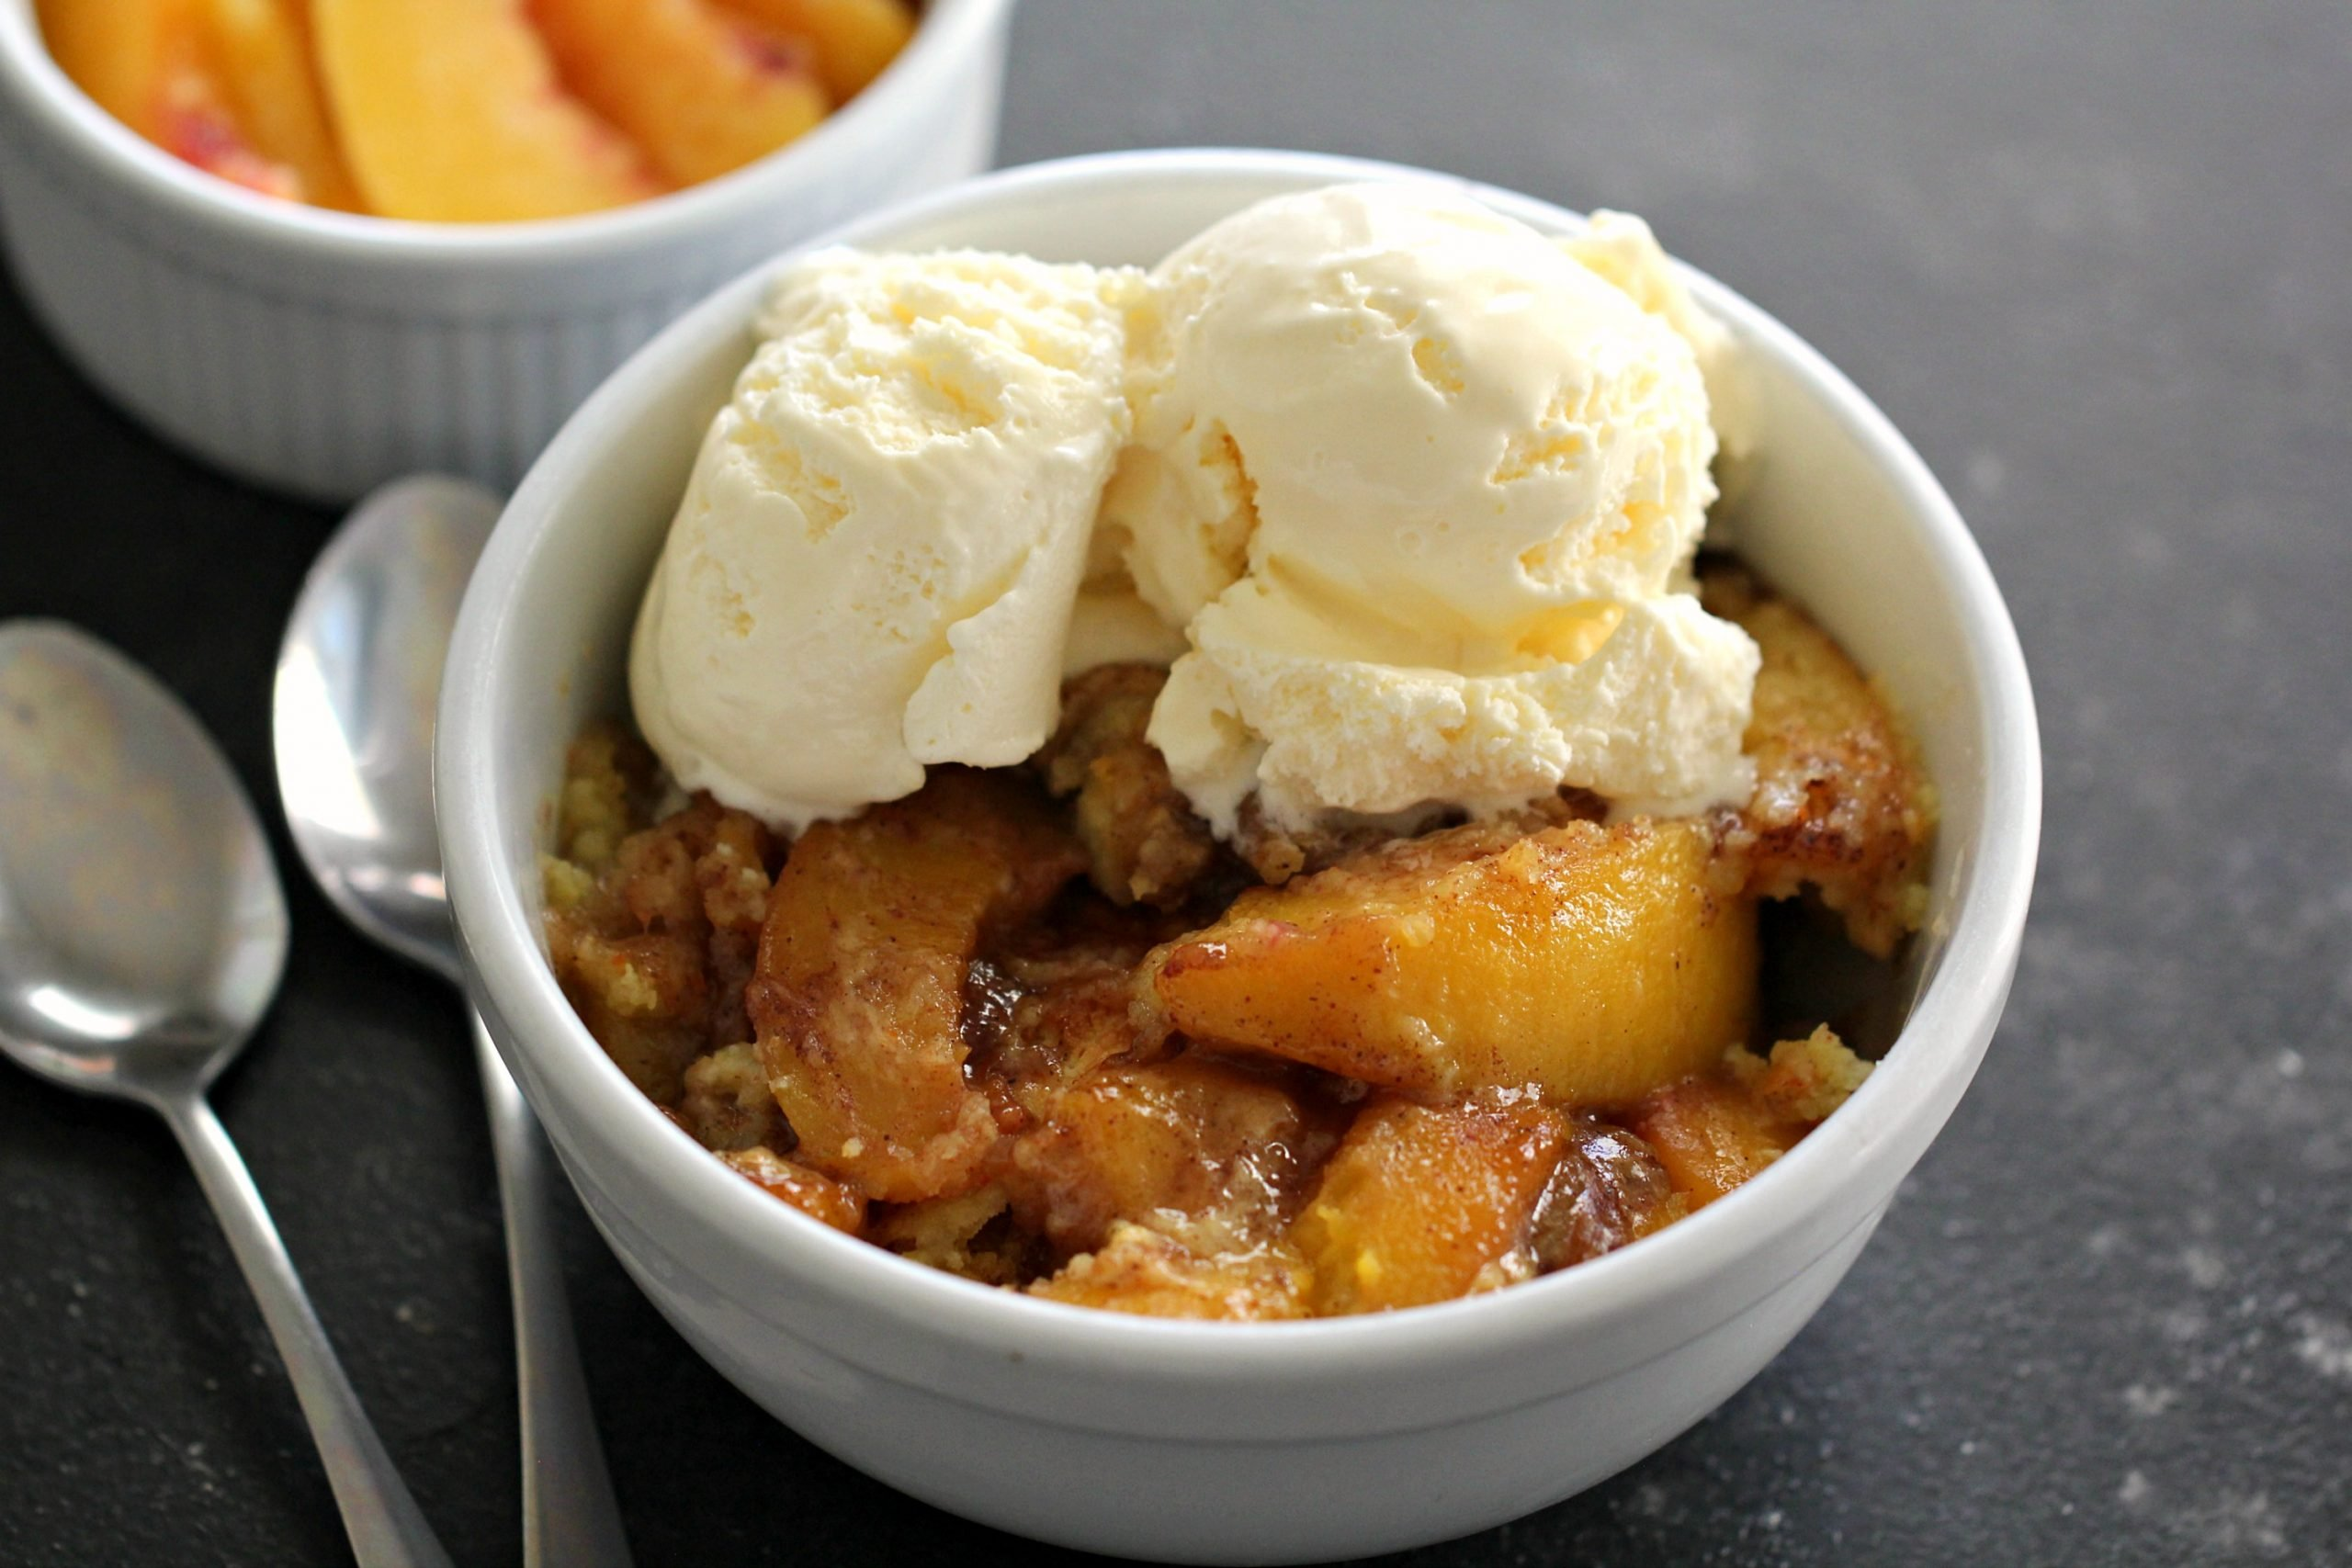 Easy Instant Pot Peach Cobbler in a white bowl topped with ice cream